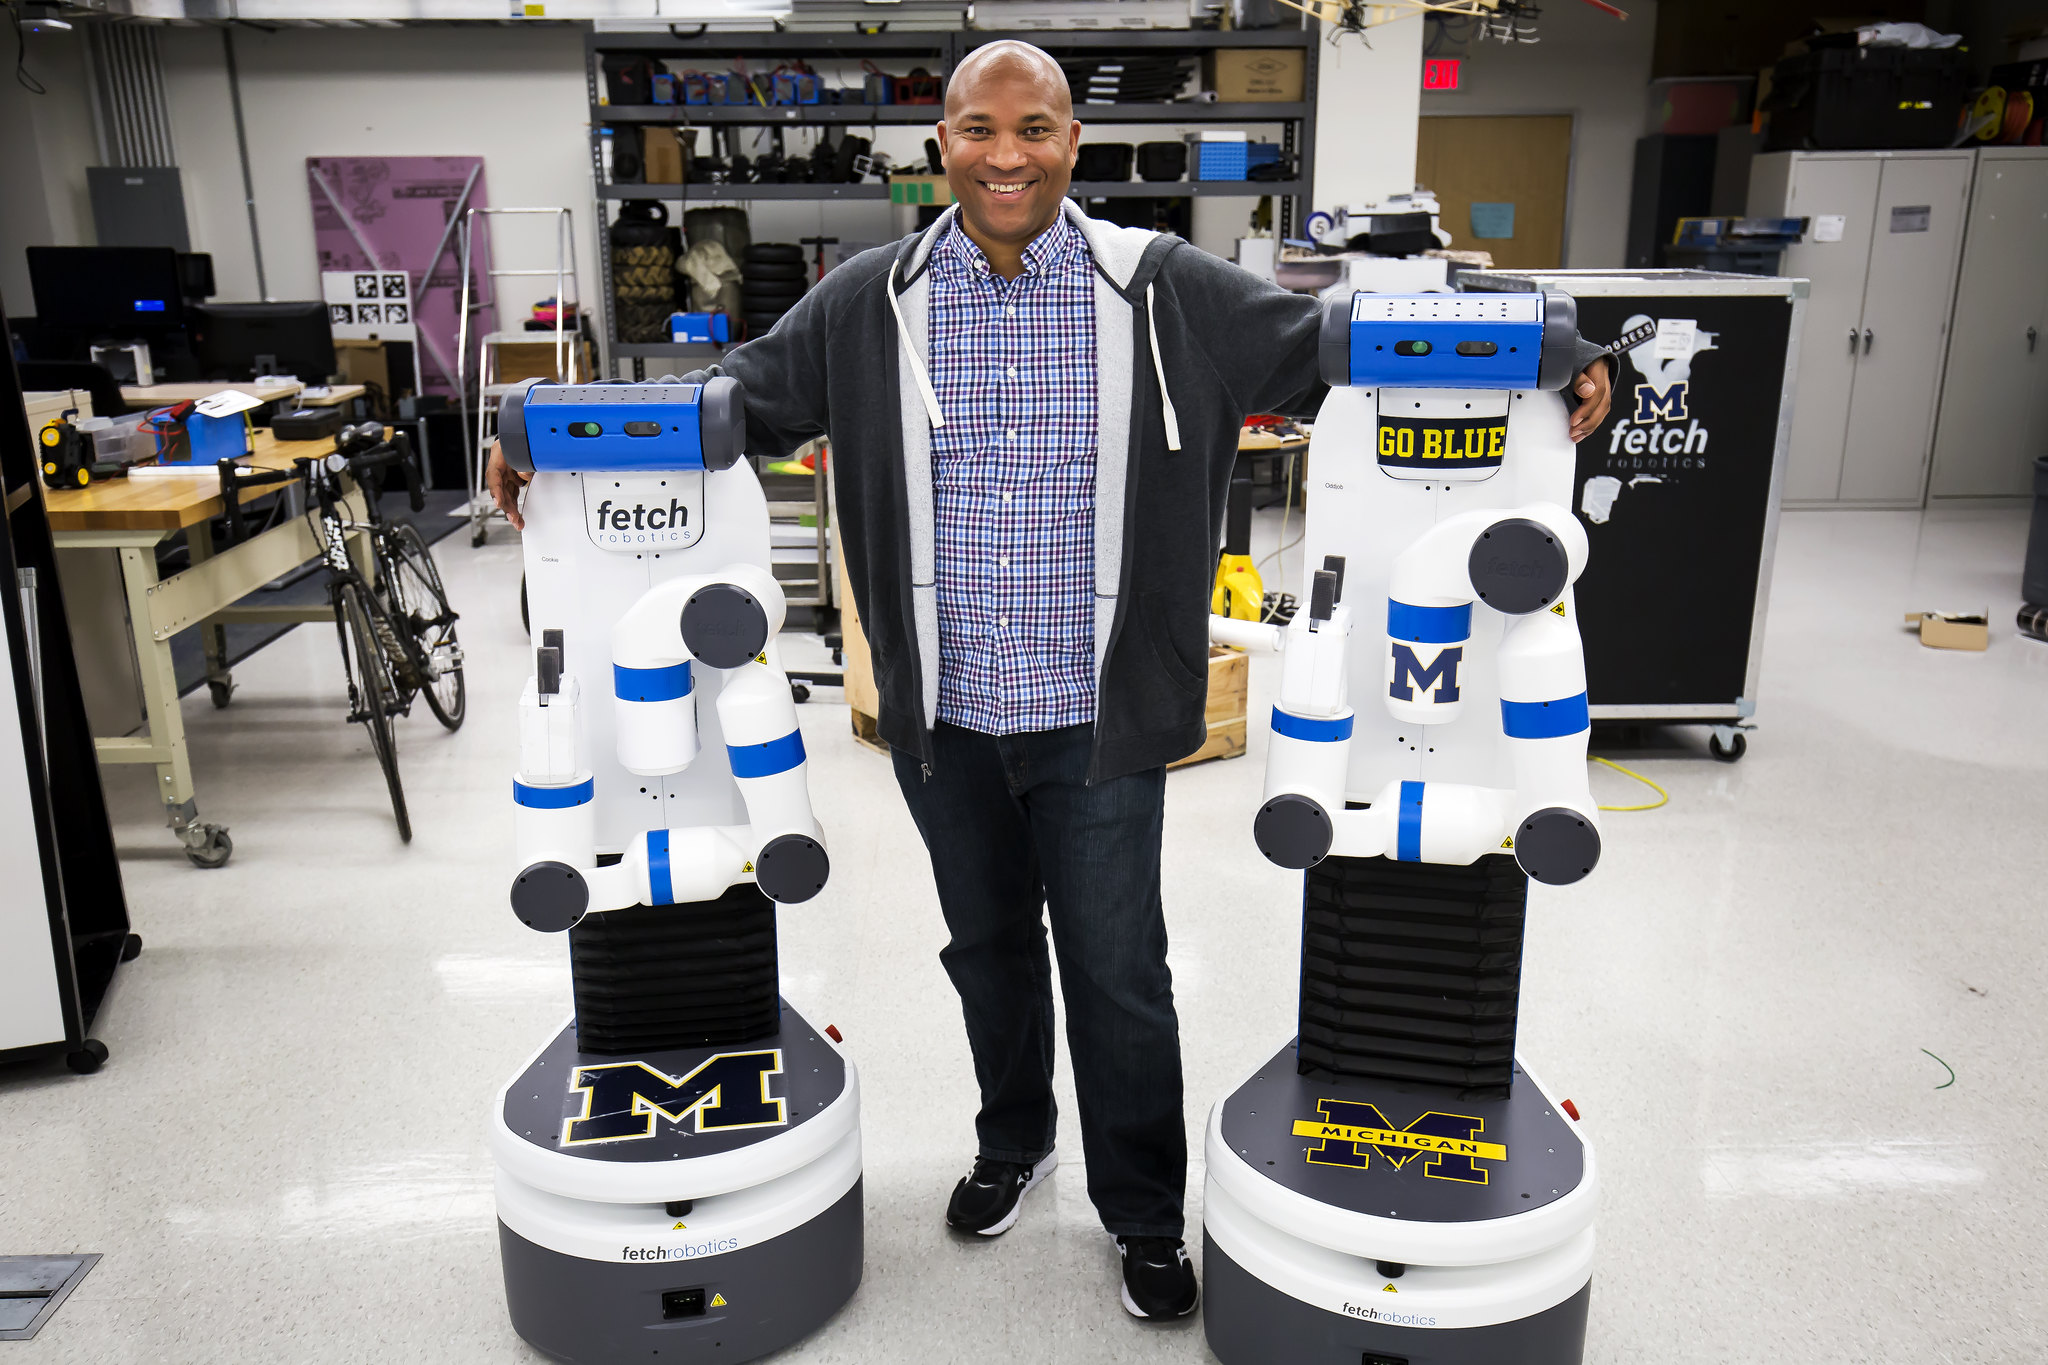 Chad Jenkins, CSE Associate Professor, poses with his research group's two robots, Odd Job and Cookie, in the Beyster Building on October 27, 2016. Image credit: Joseph Xu/Michigan Engineering Multimedia Content Producer, University of Michigan